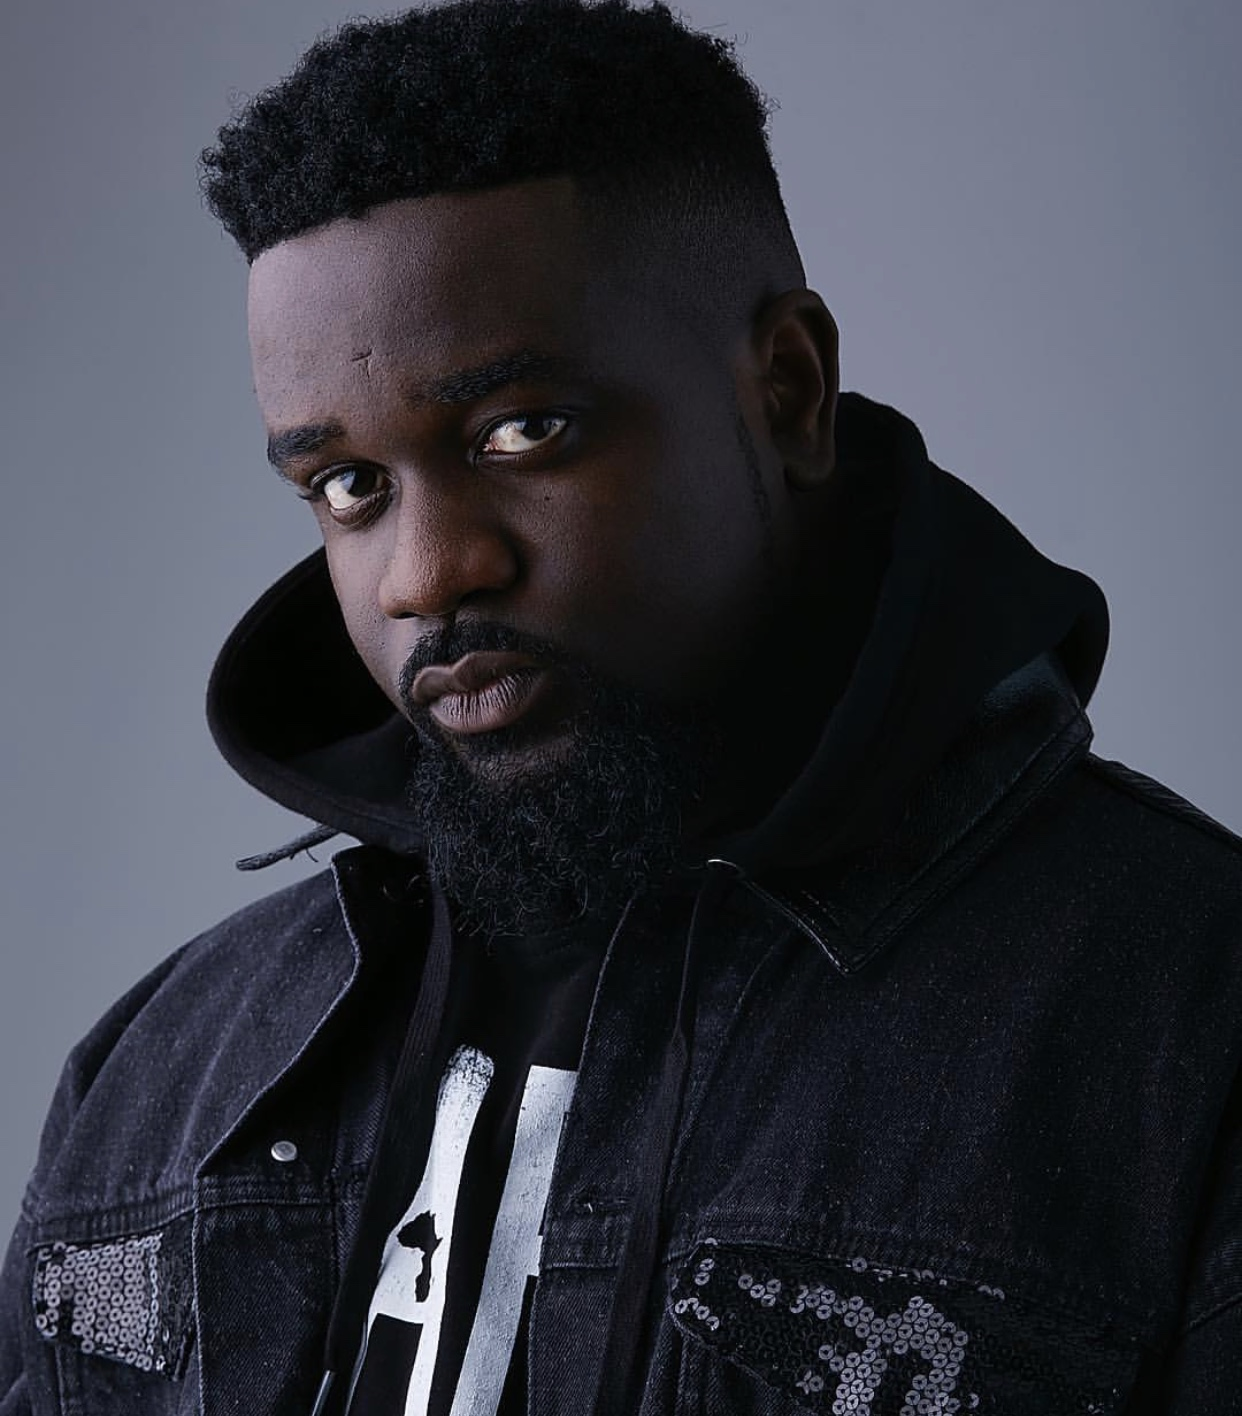 Shatta Wale can get me mad but our differences shouldn't make us miss the bigger picture – Sarkodie